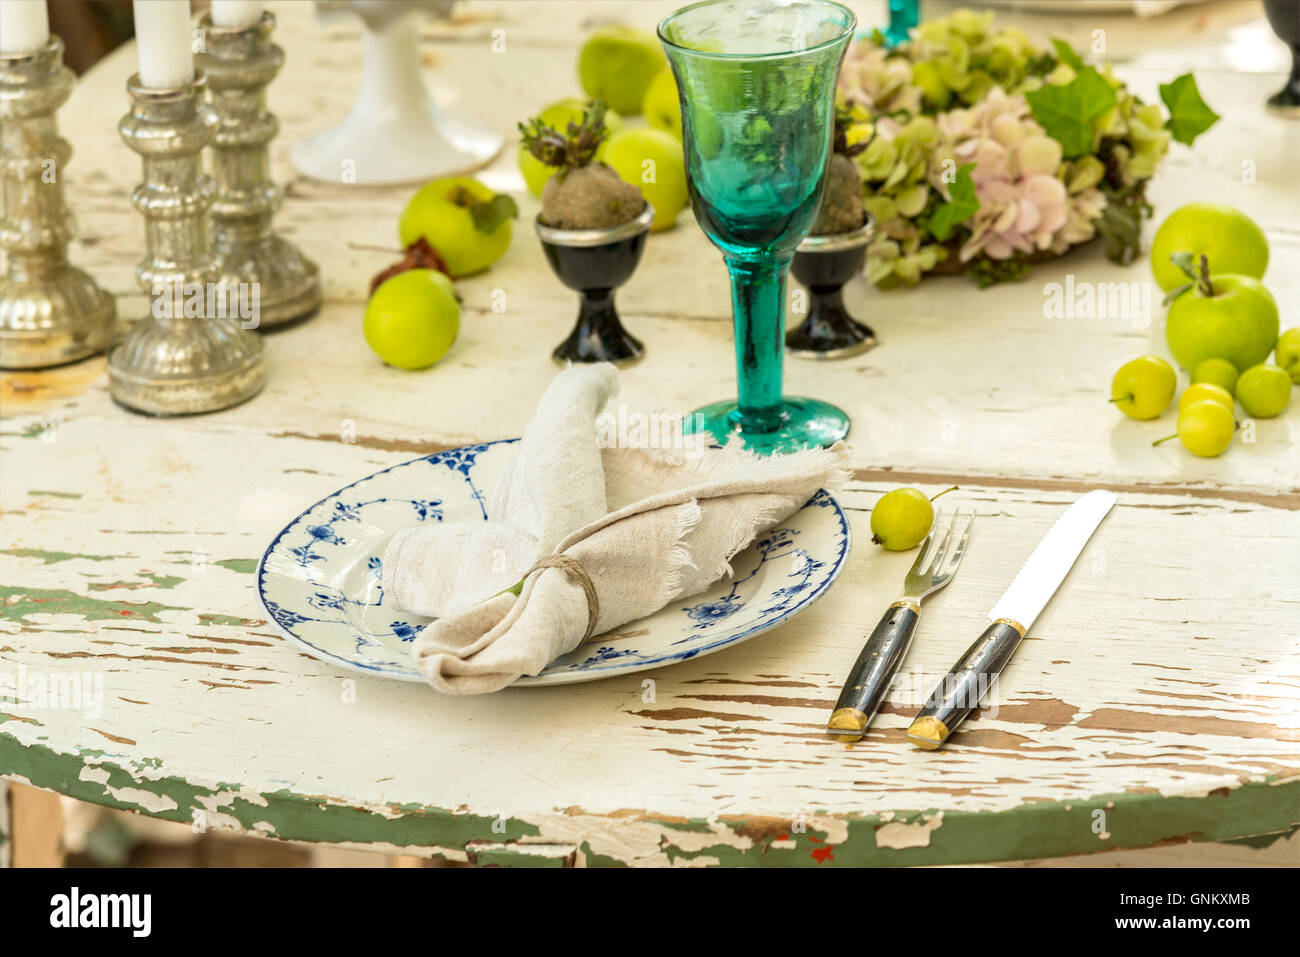 Image of rustic dinner table setting. - Stock Image